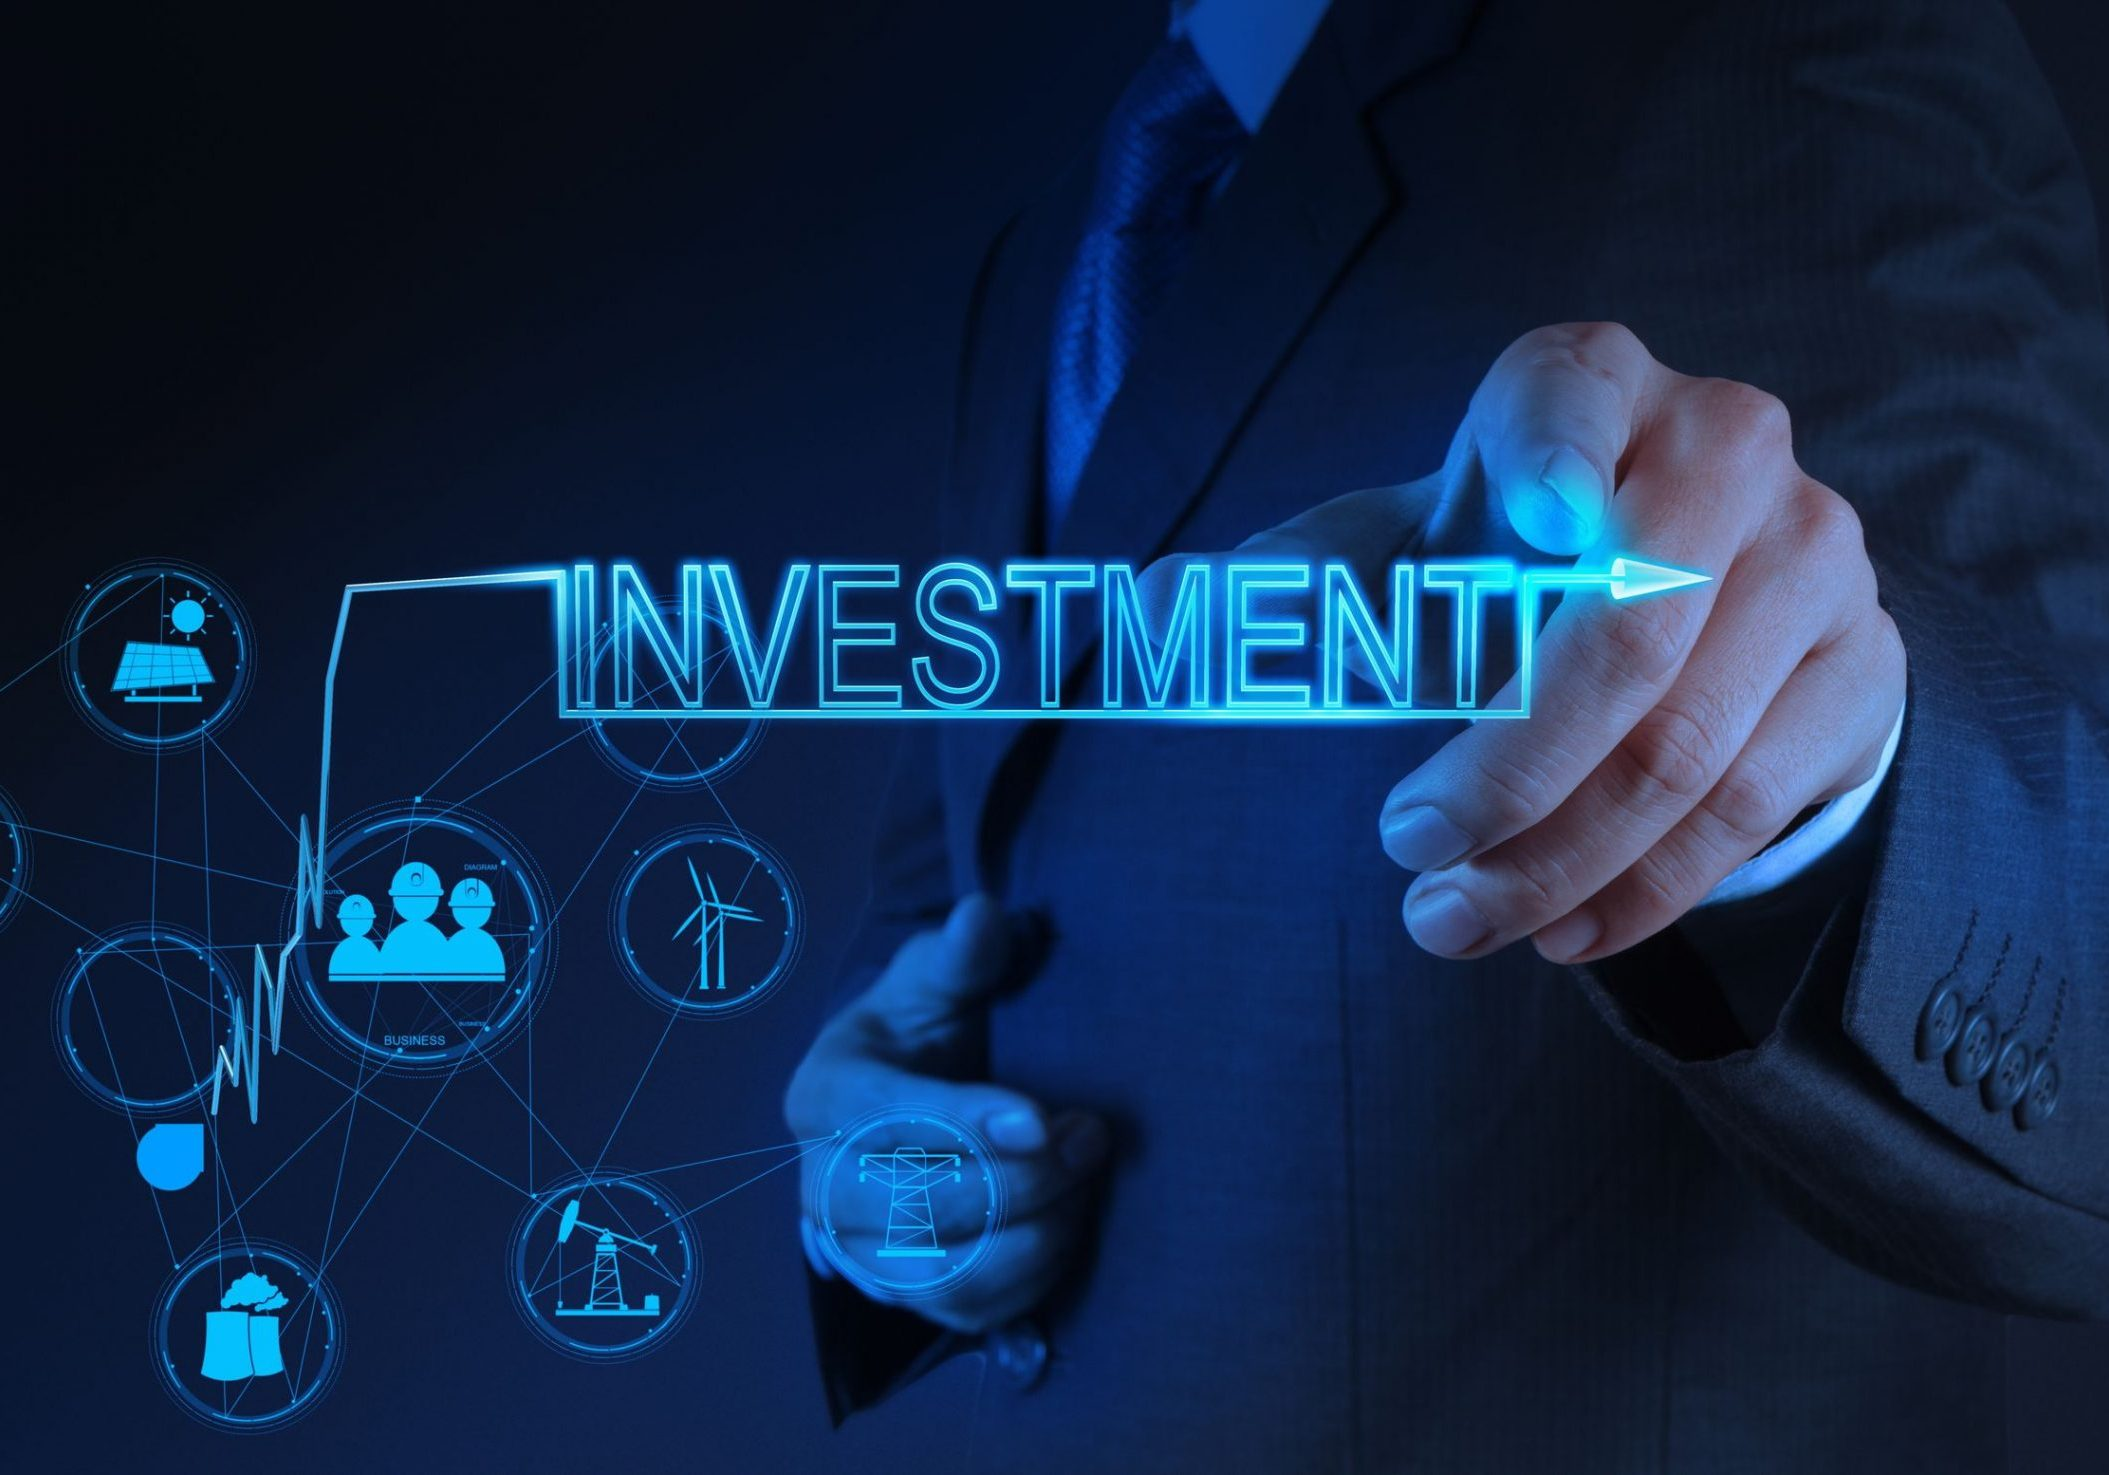 18237500 - businessman hand pointing to investment as concept